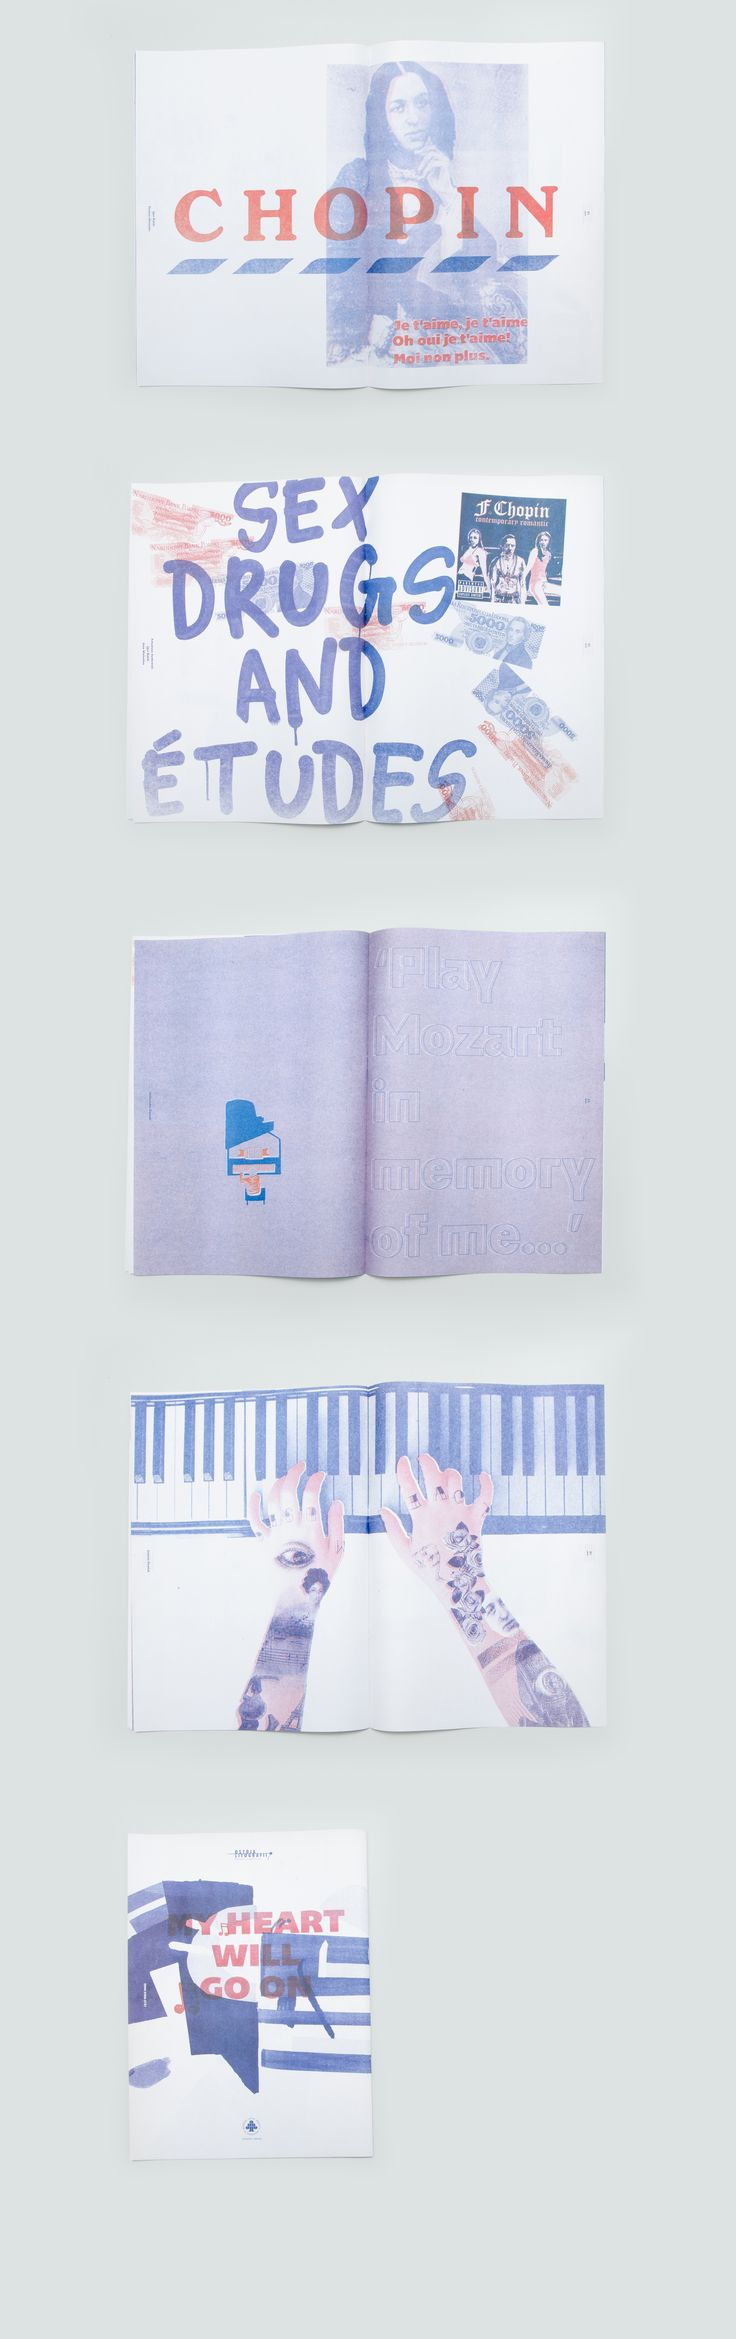 This Yearbook is a summary of the workshop of the Risograph printing. Our task was to create a concept, choose a work and then edit the graphic design. That number was associated with the life and work of Frederic Chopin. Book design Igor Kubik Ania Wieluńska